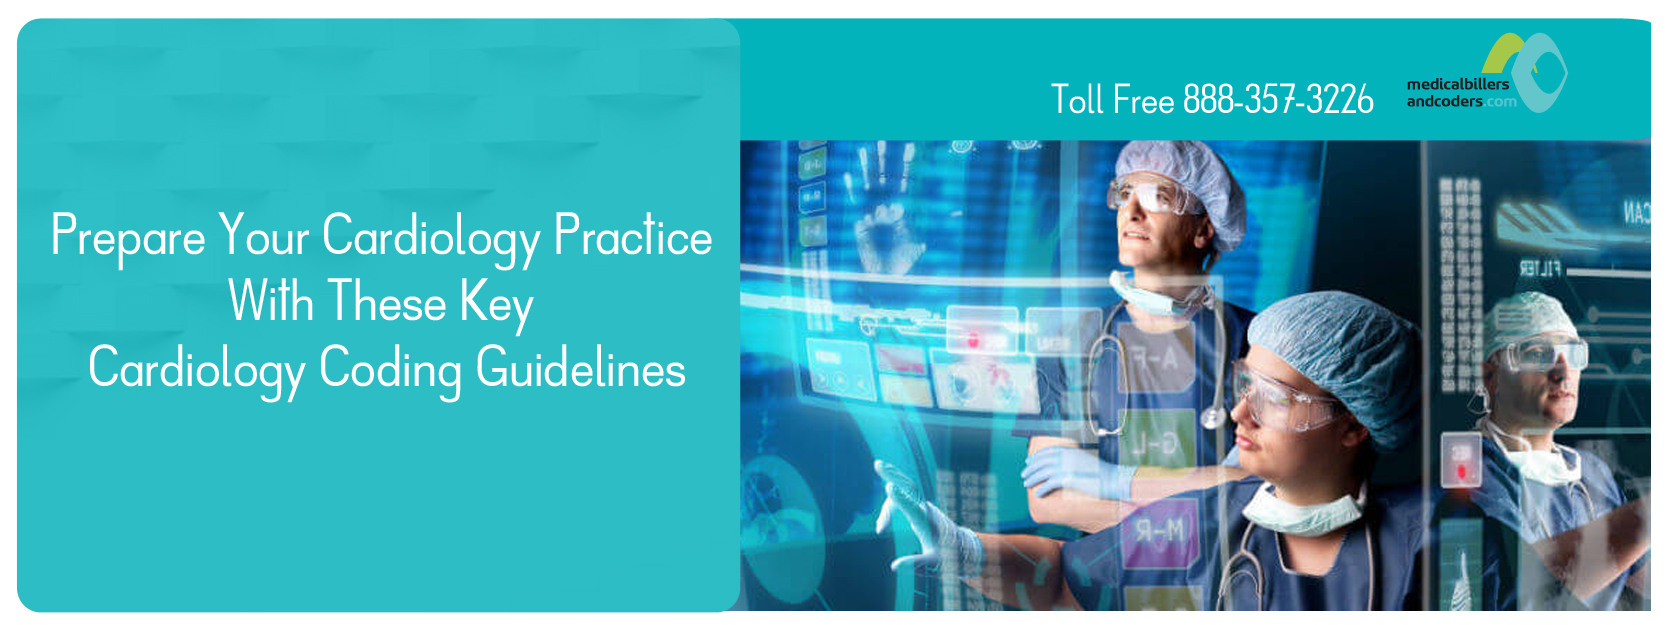 blog-prepare-your-cardiology-practice-with-these-key-cardiology-coding-guidelines